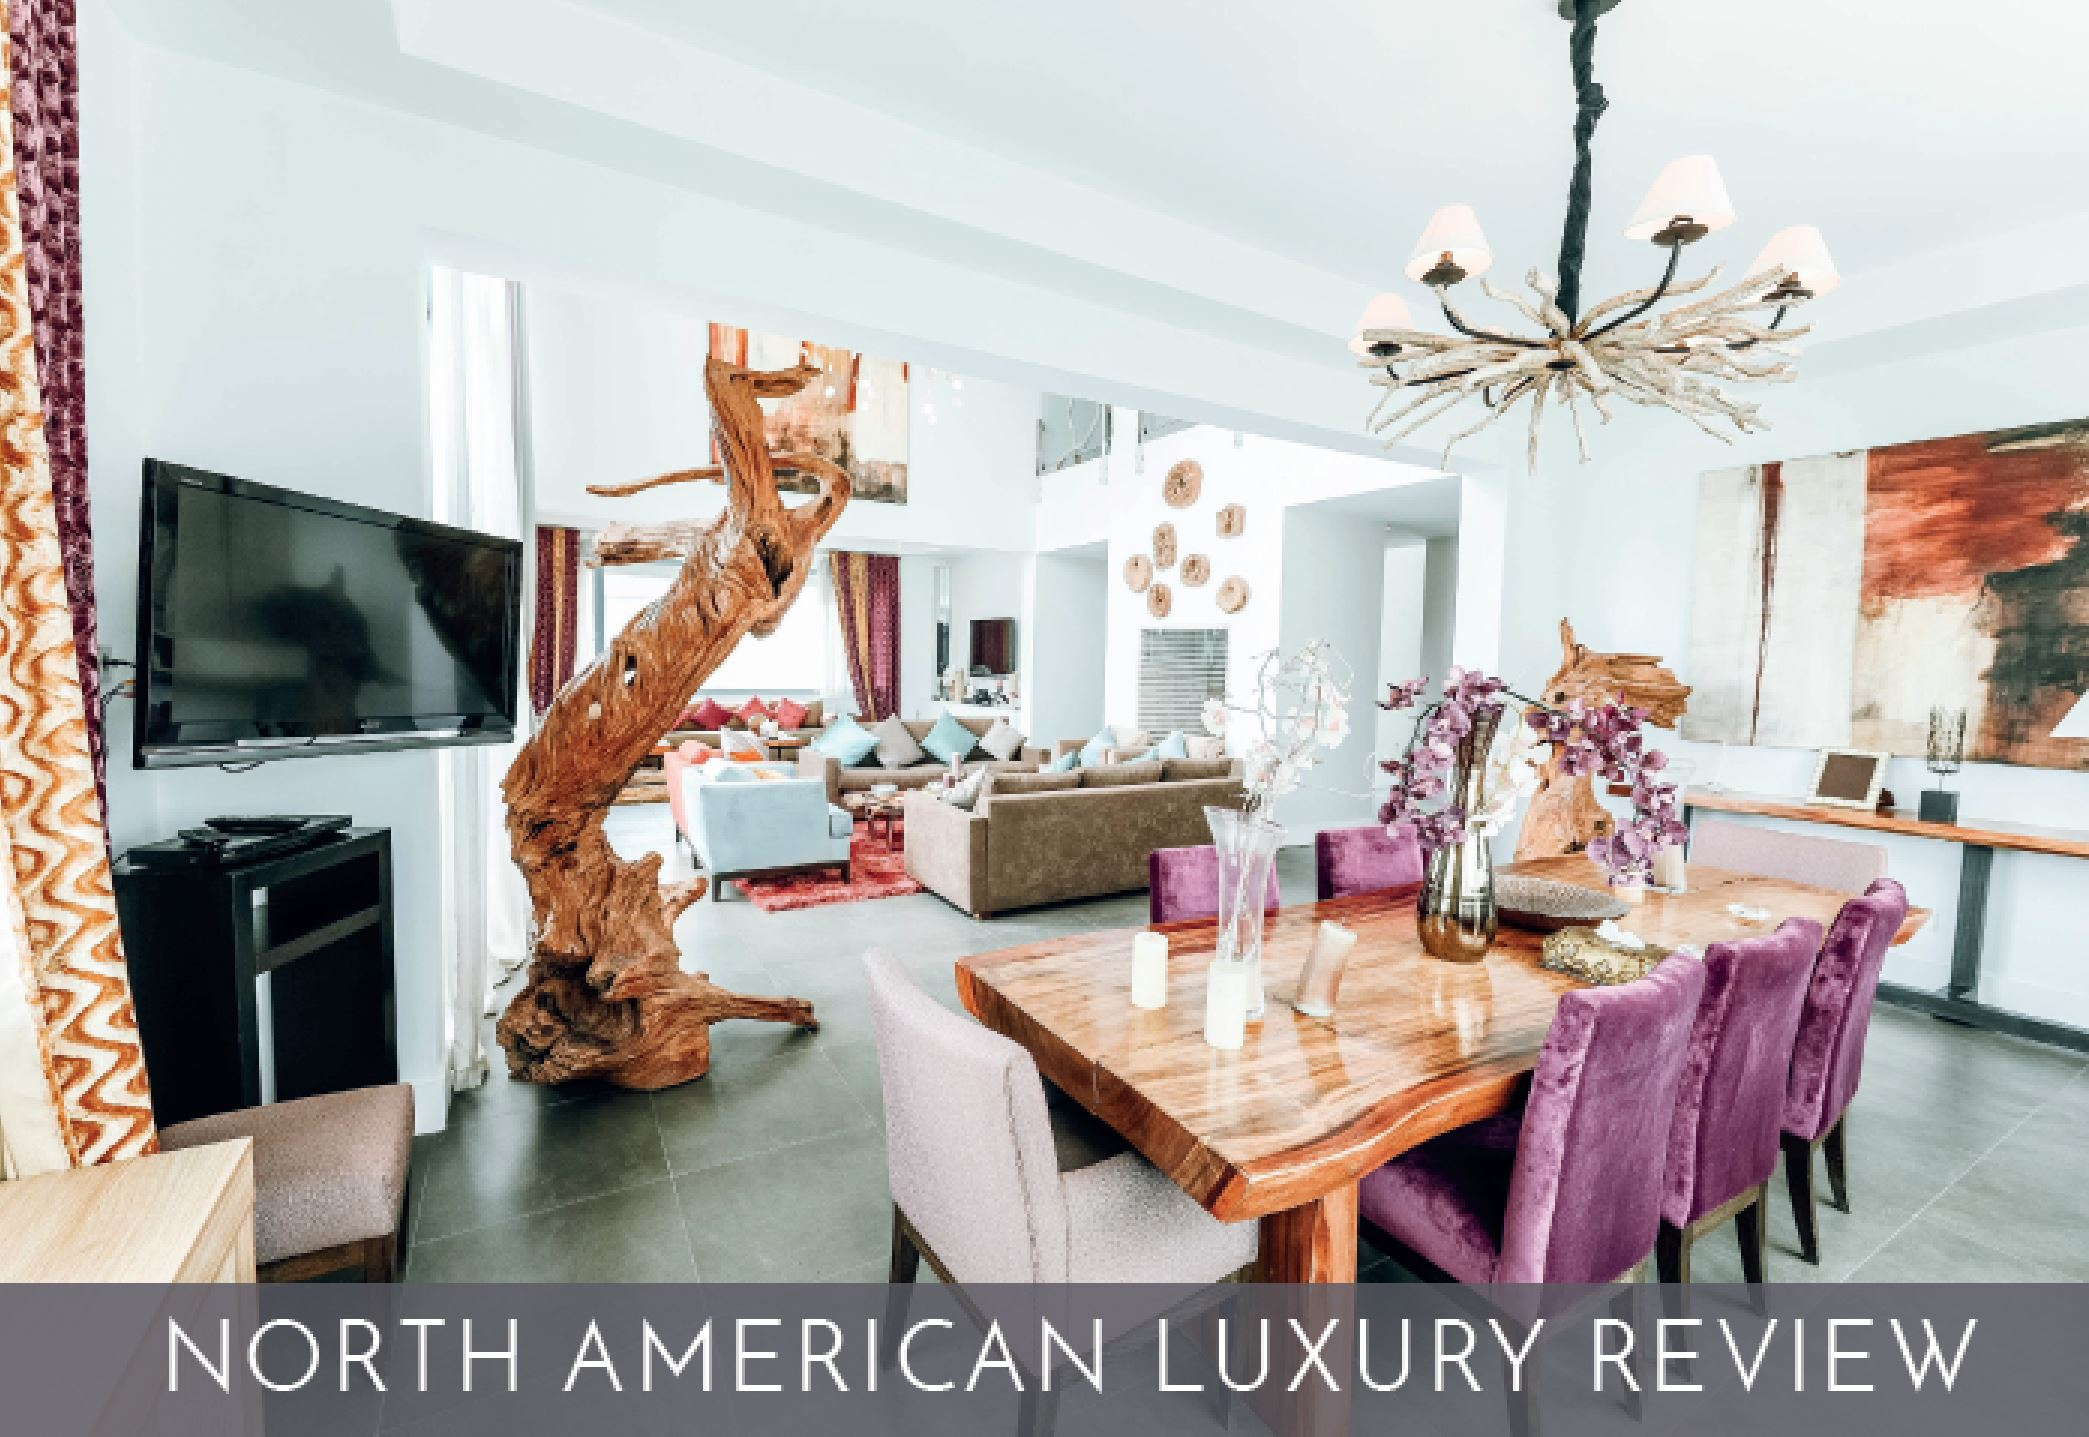 Luxury Home Market Report North America Luxury Home Market Review April 05 06 2020 b Hoey Team eXp Realty